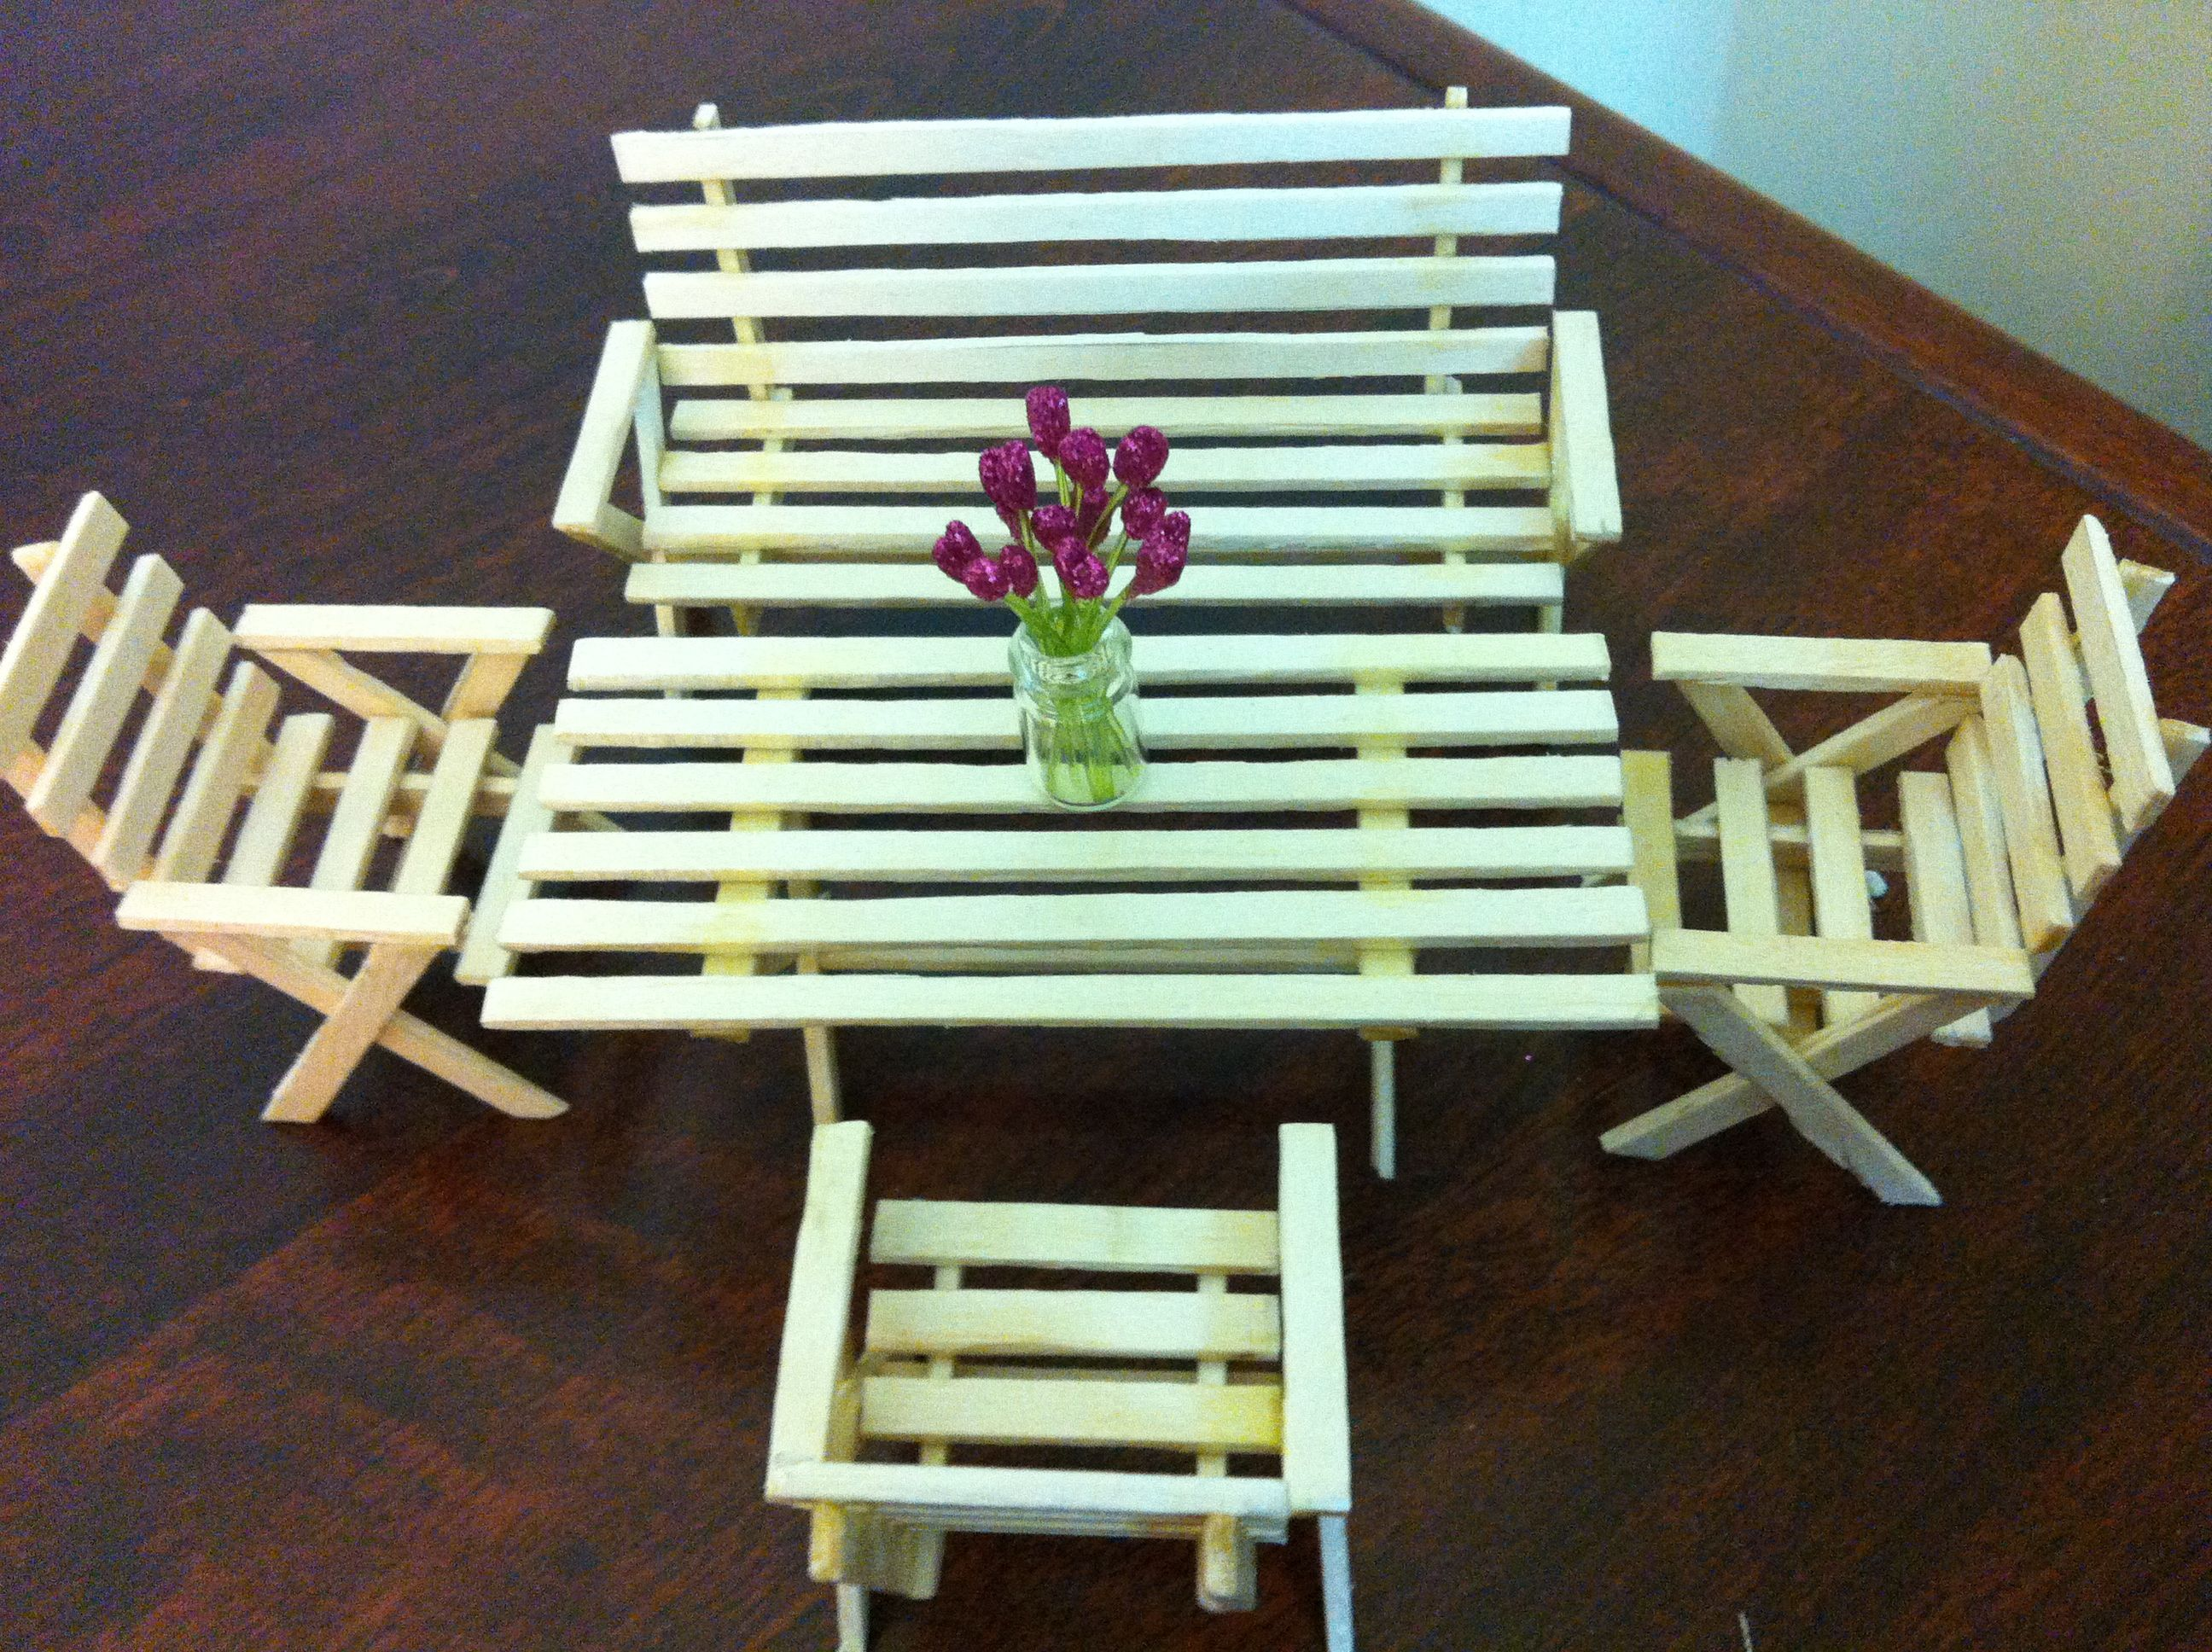 Popsicle stick church craft - Find This Pin And More On Popsicle Sticks